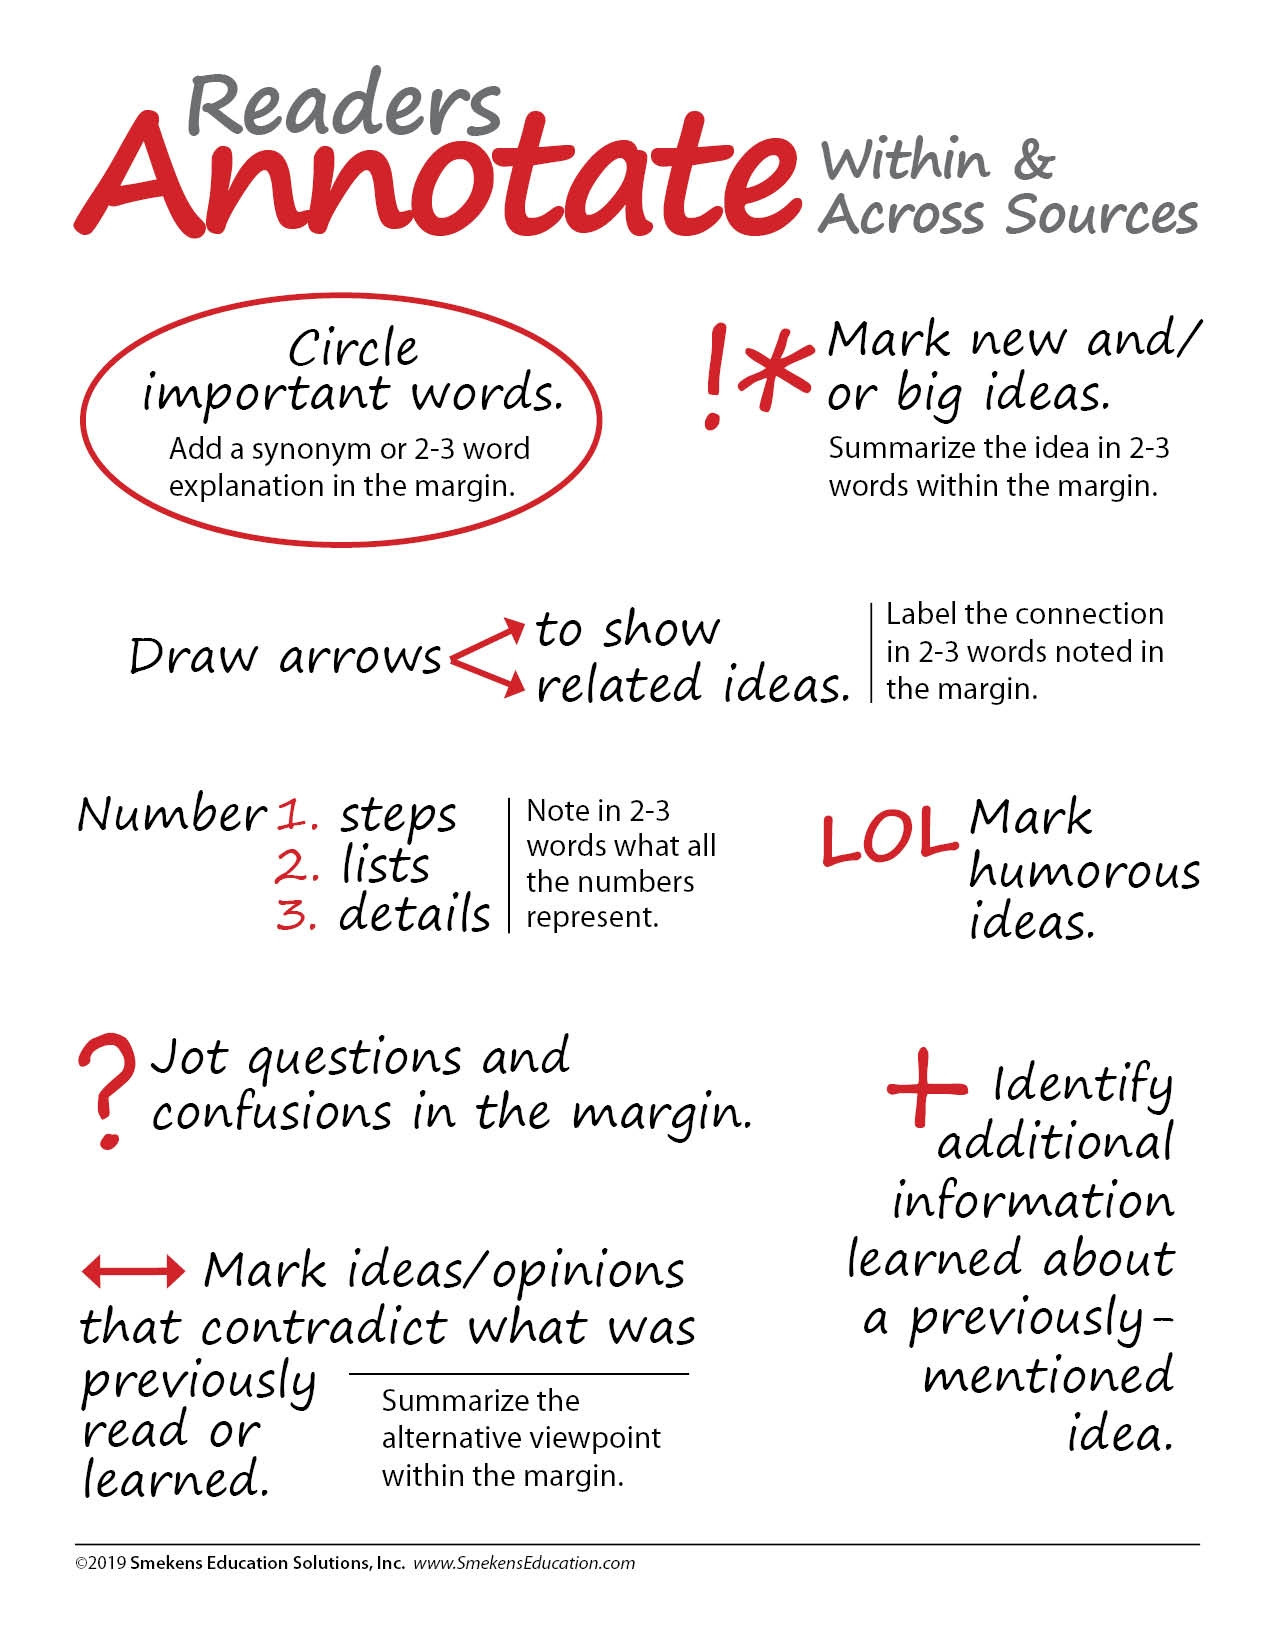 Annotation Worksheet Middle School Simplify Annotation with Marks Codes & Abbreviations